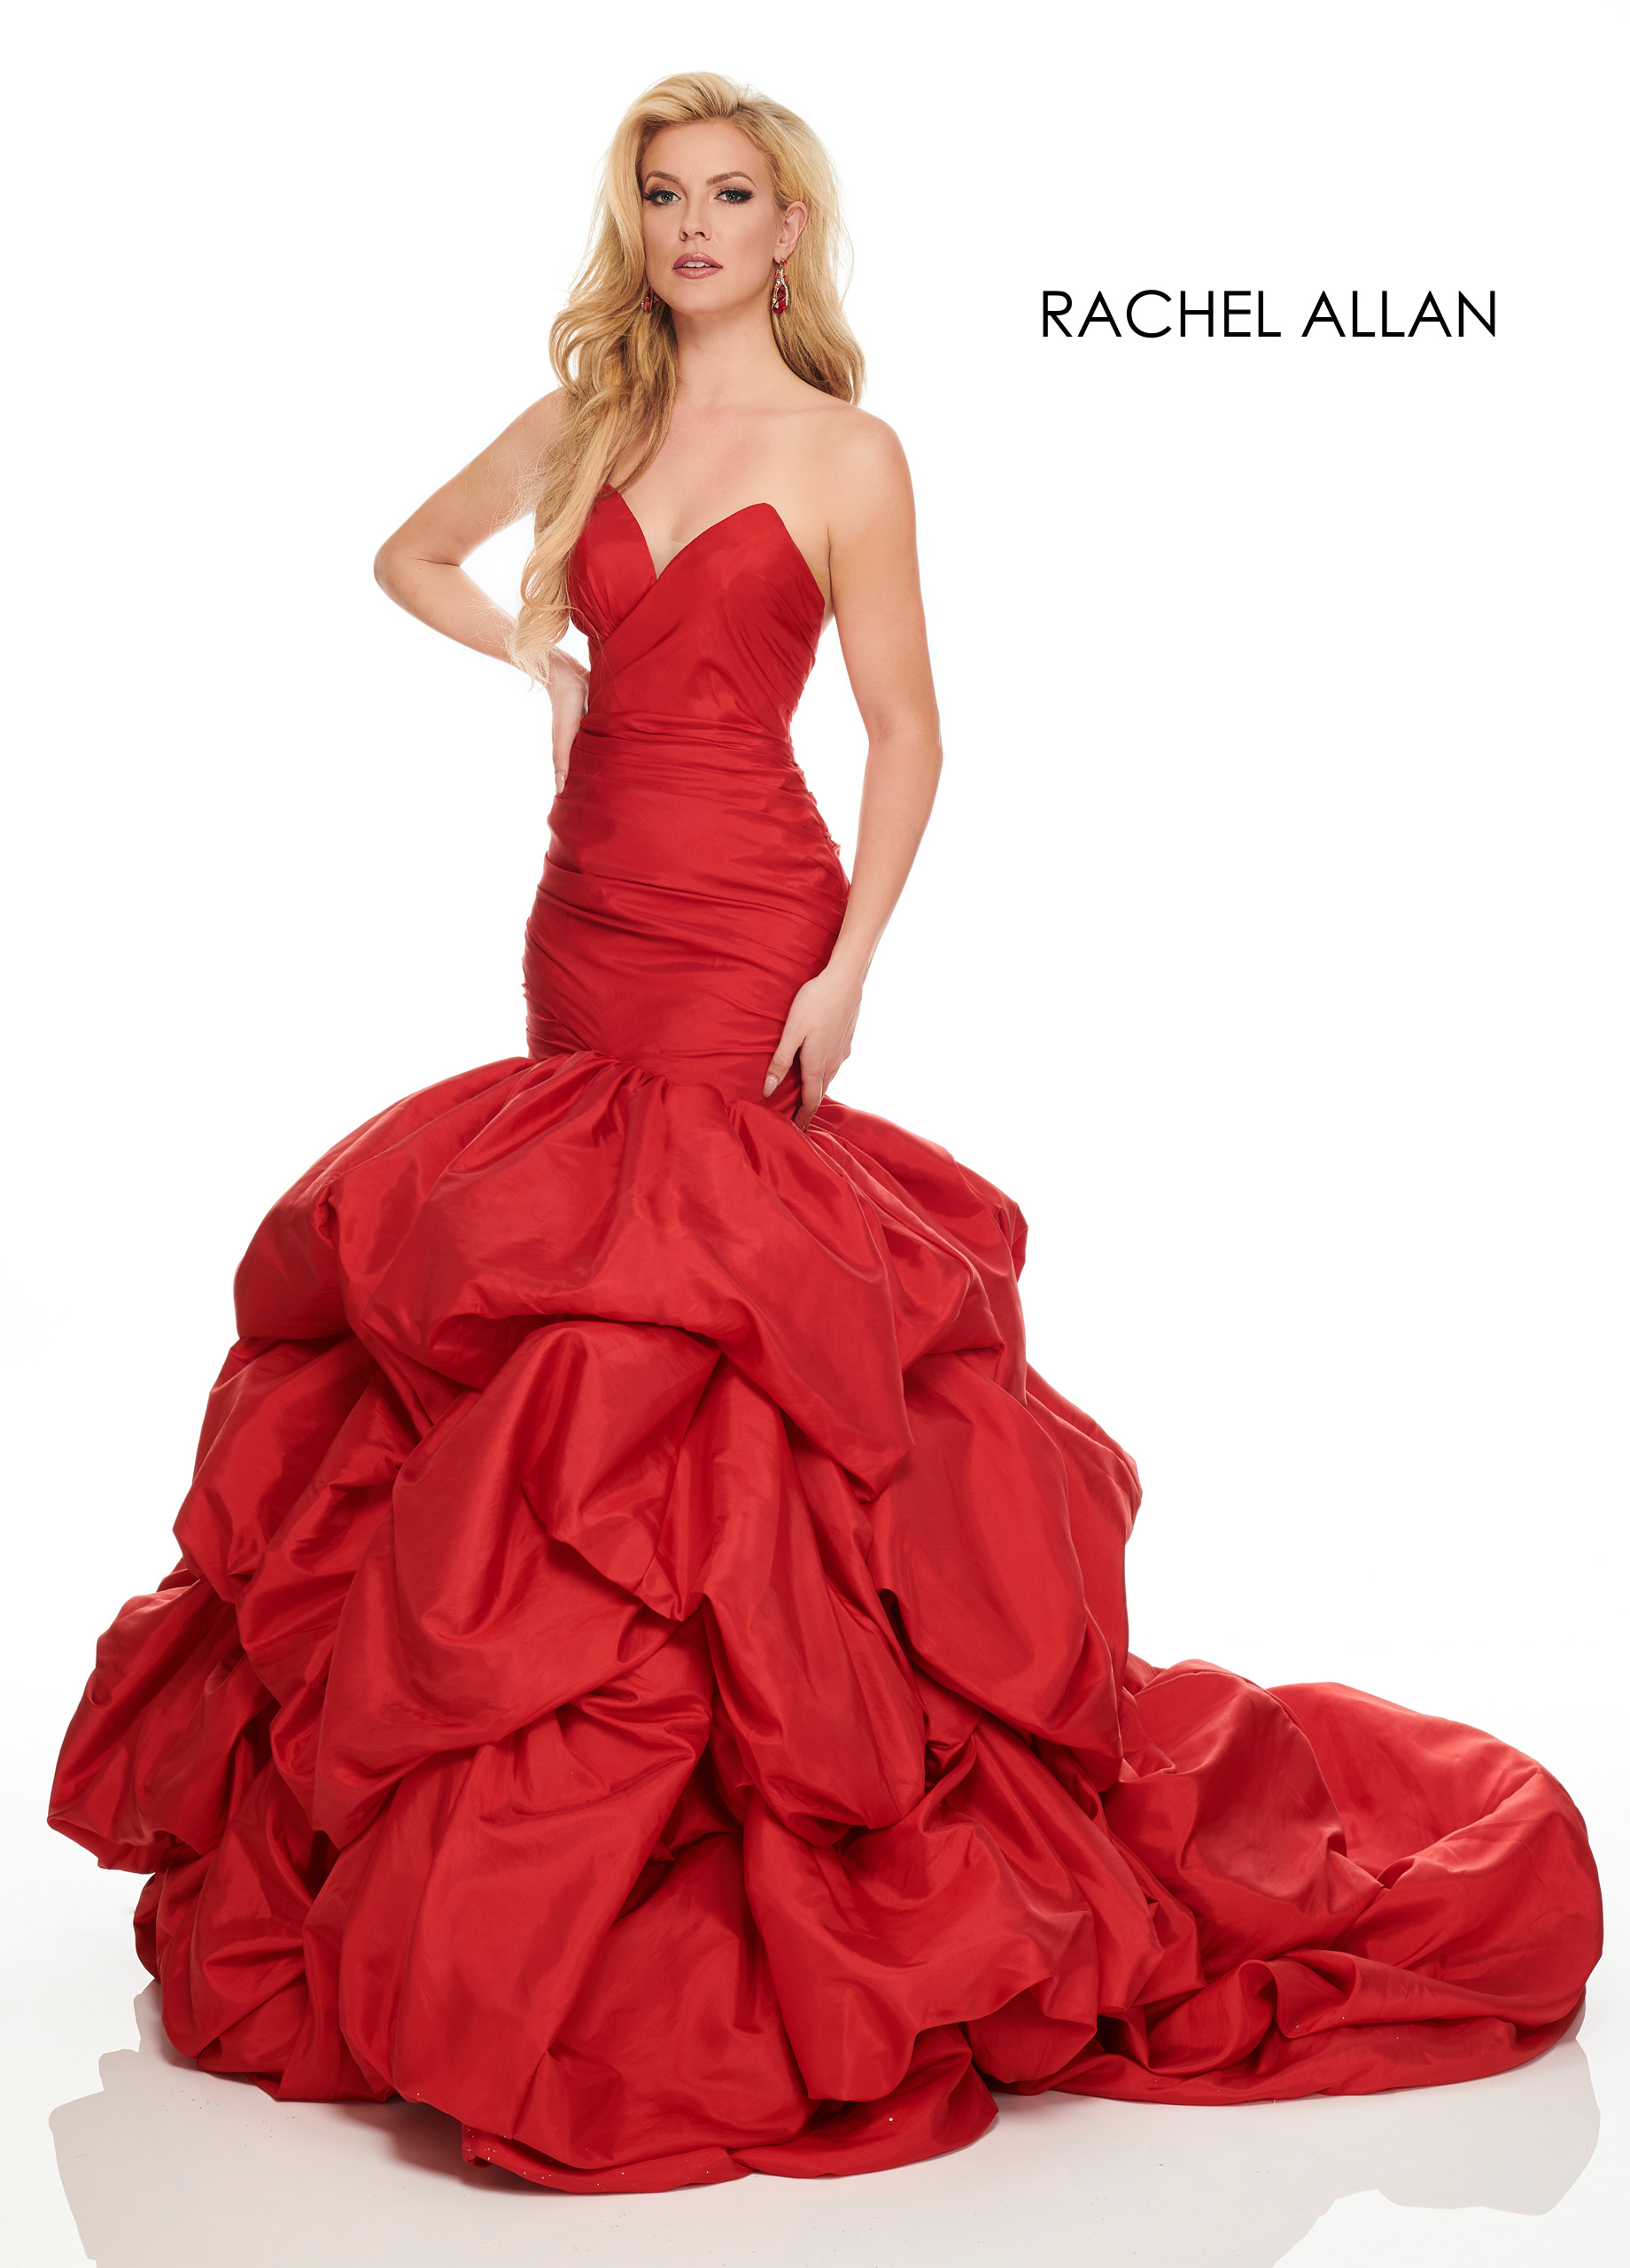 Strappy Drop Waist Couture Dresses in Red Color